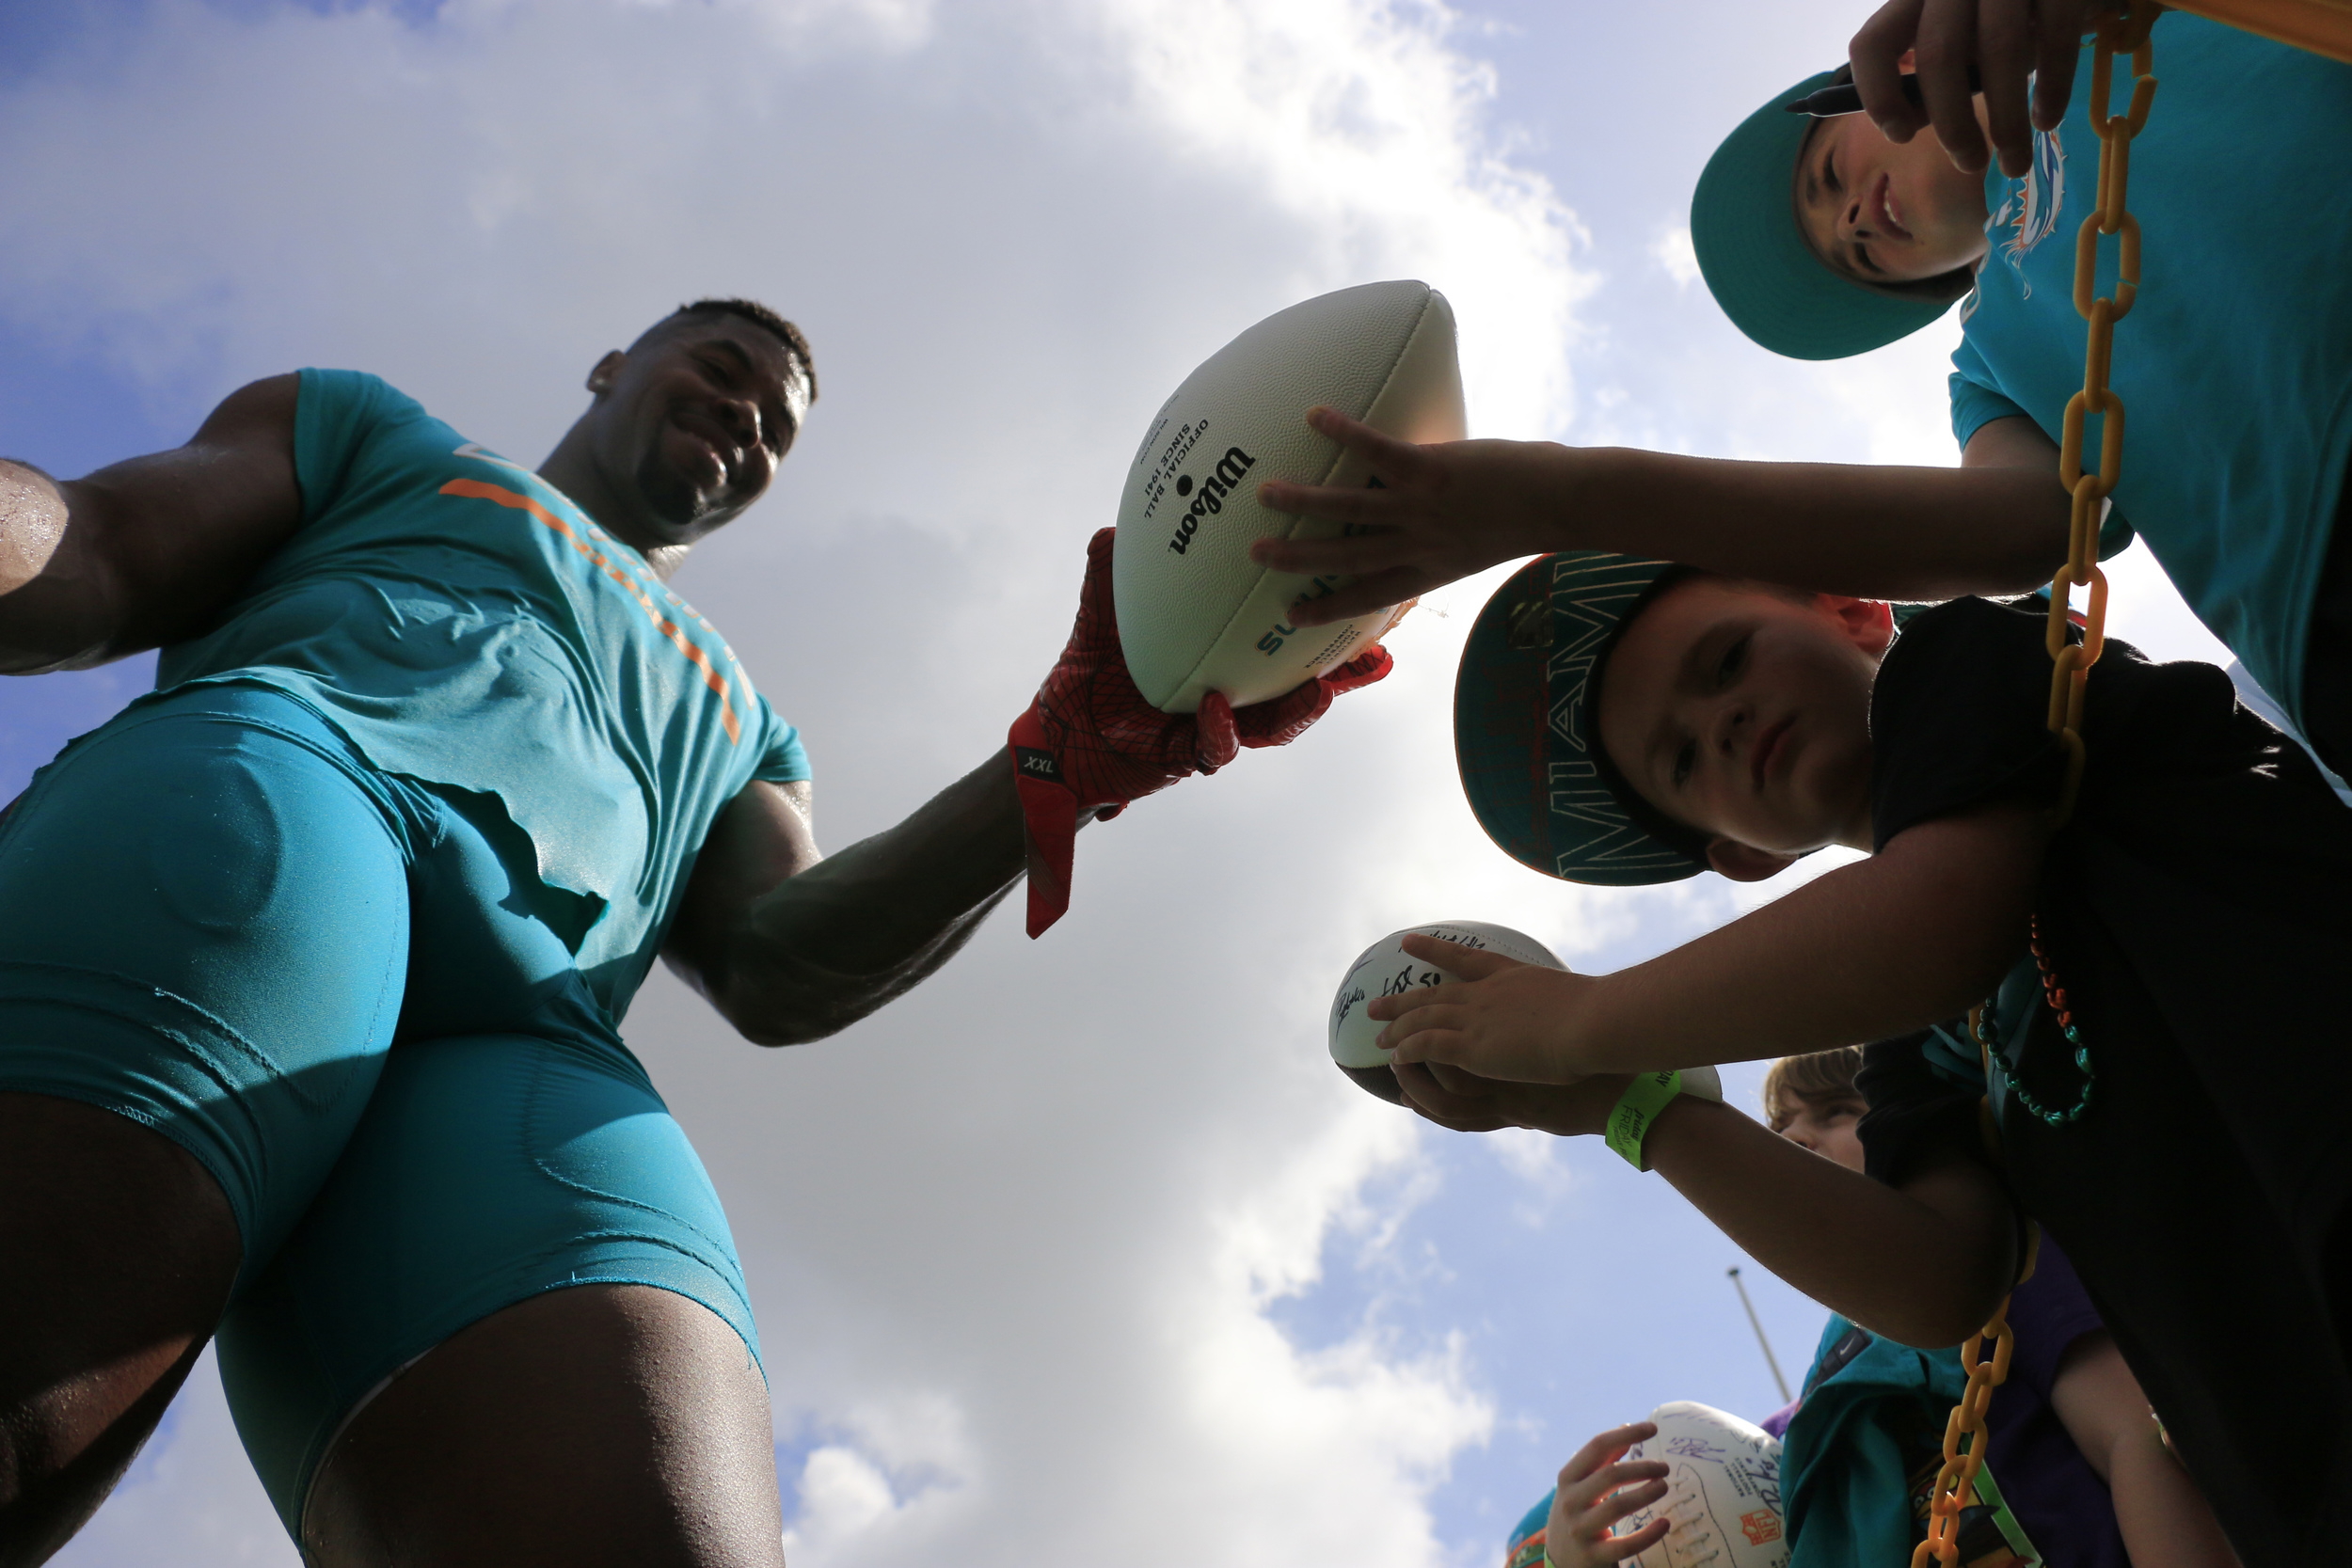 Miami Dolphins defensive end Cameron Wake (91) signs autographs after the first day of Miami Dolphins training camp held at the Dolphins Training Facility on Friday, July 29, 2016.